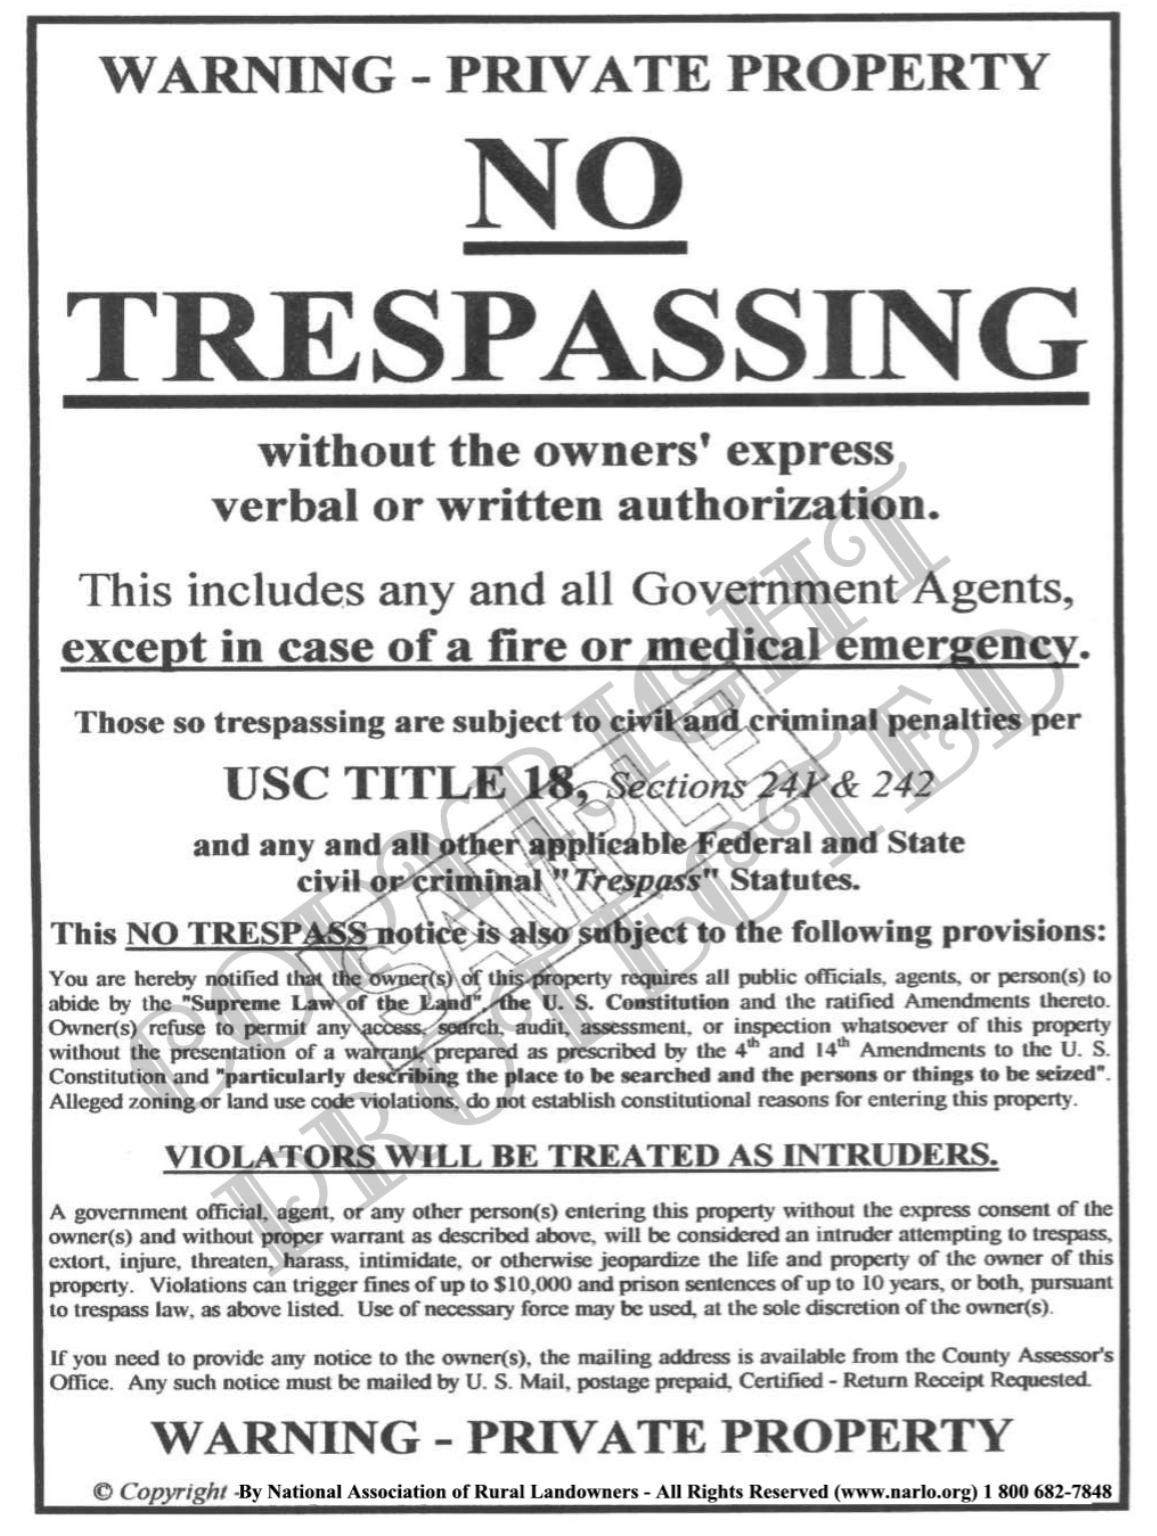 NARLO's No Trespassing Sign